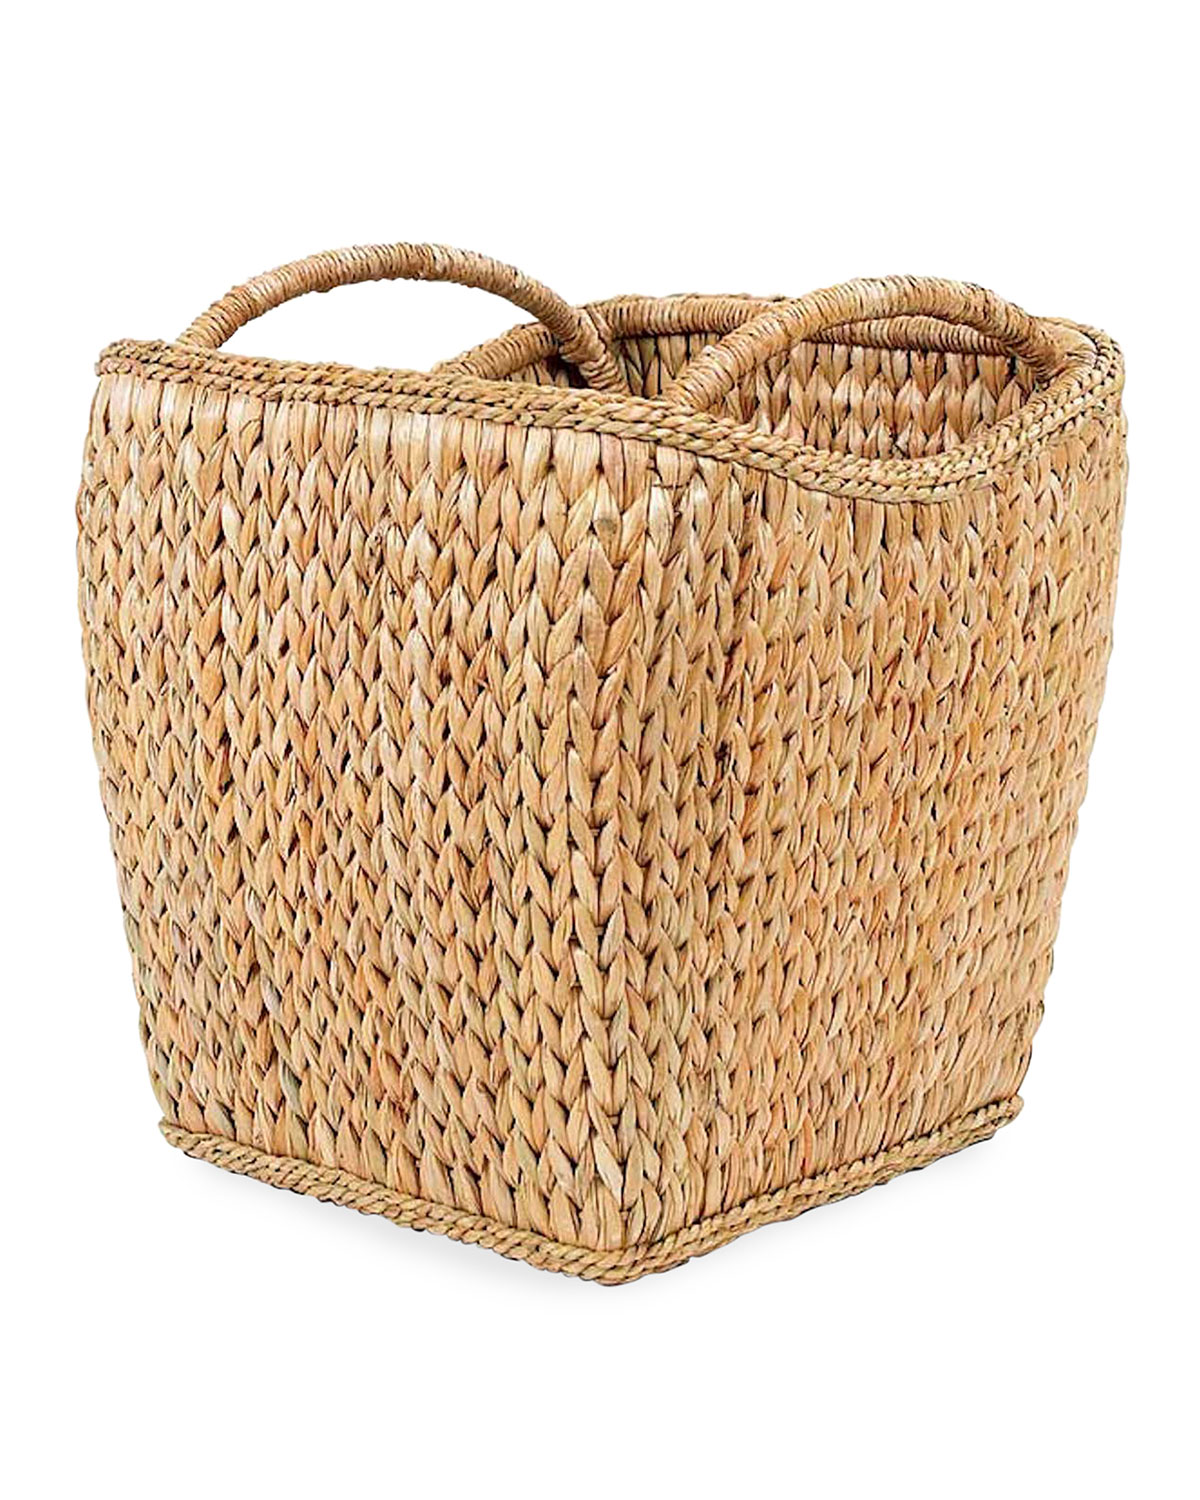 Mainly Basketssweater Weave Vineyard Basket